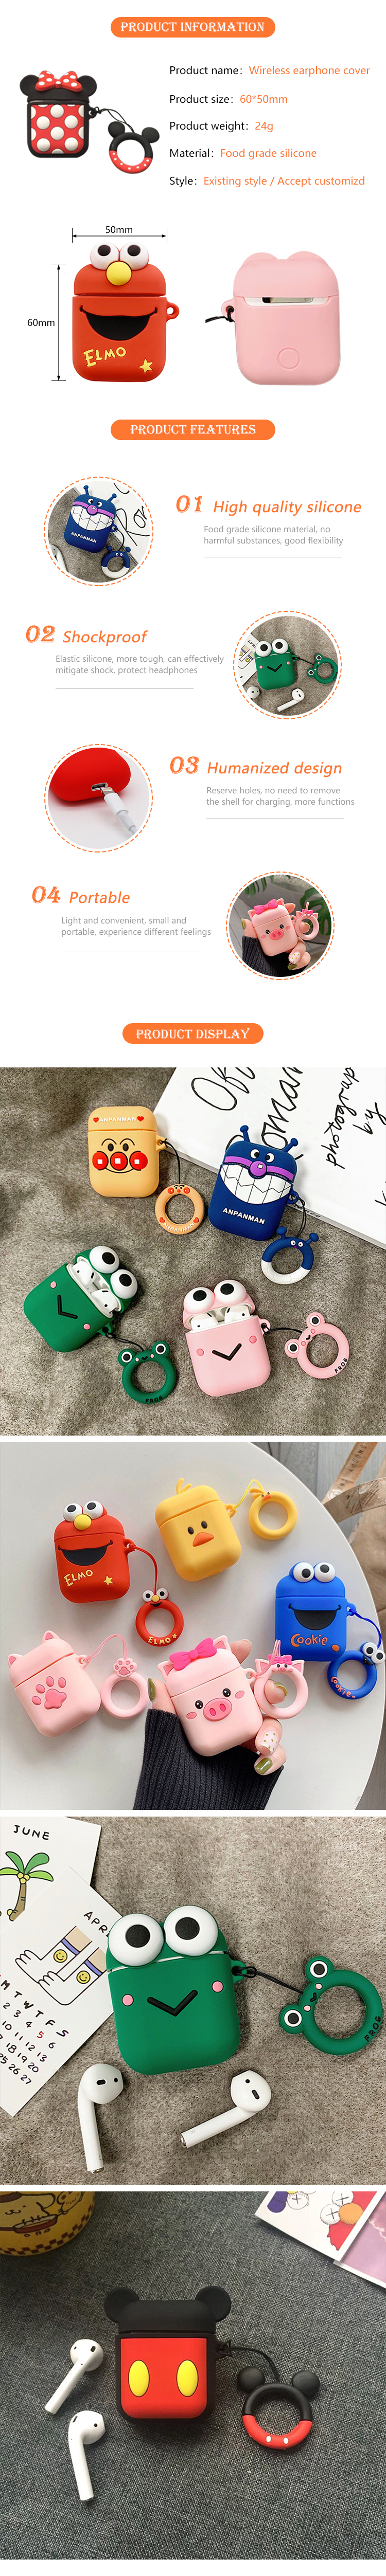 Cheapest Silicon Cute 3D Cartoon wireless earphone carrying case for adults